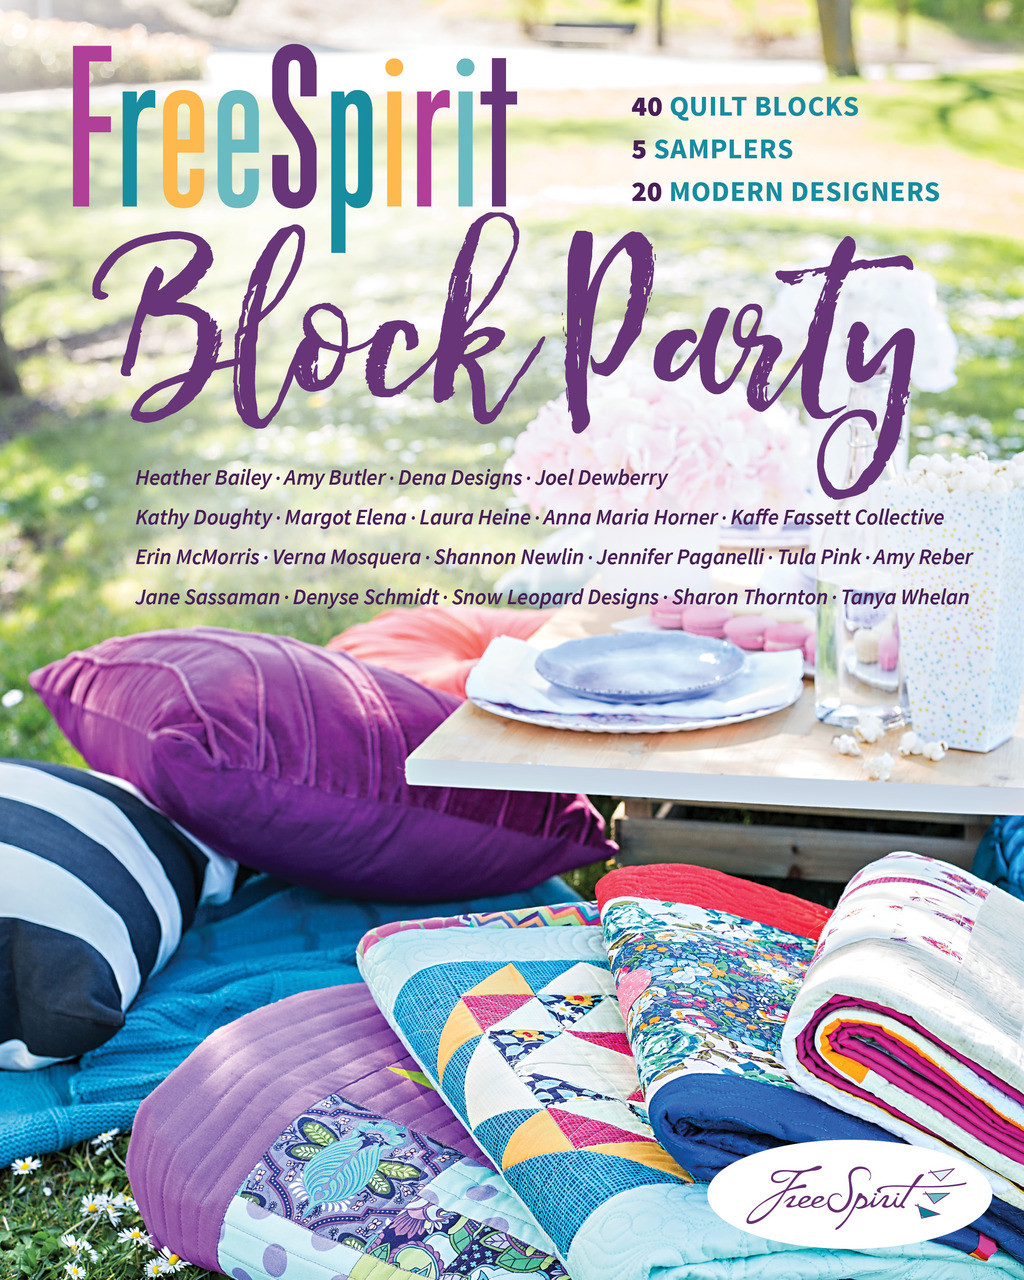 FreeSpirit Block Party